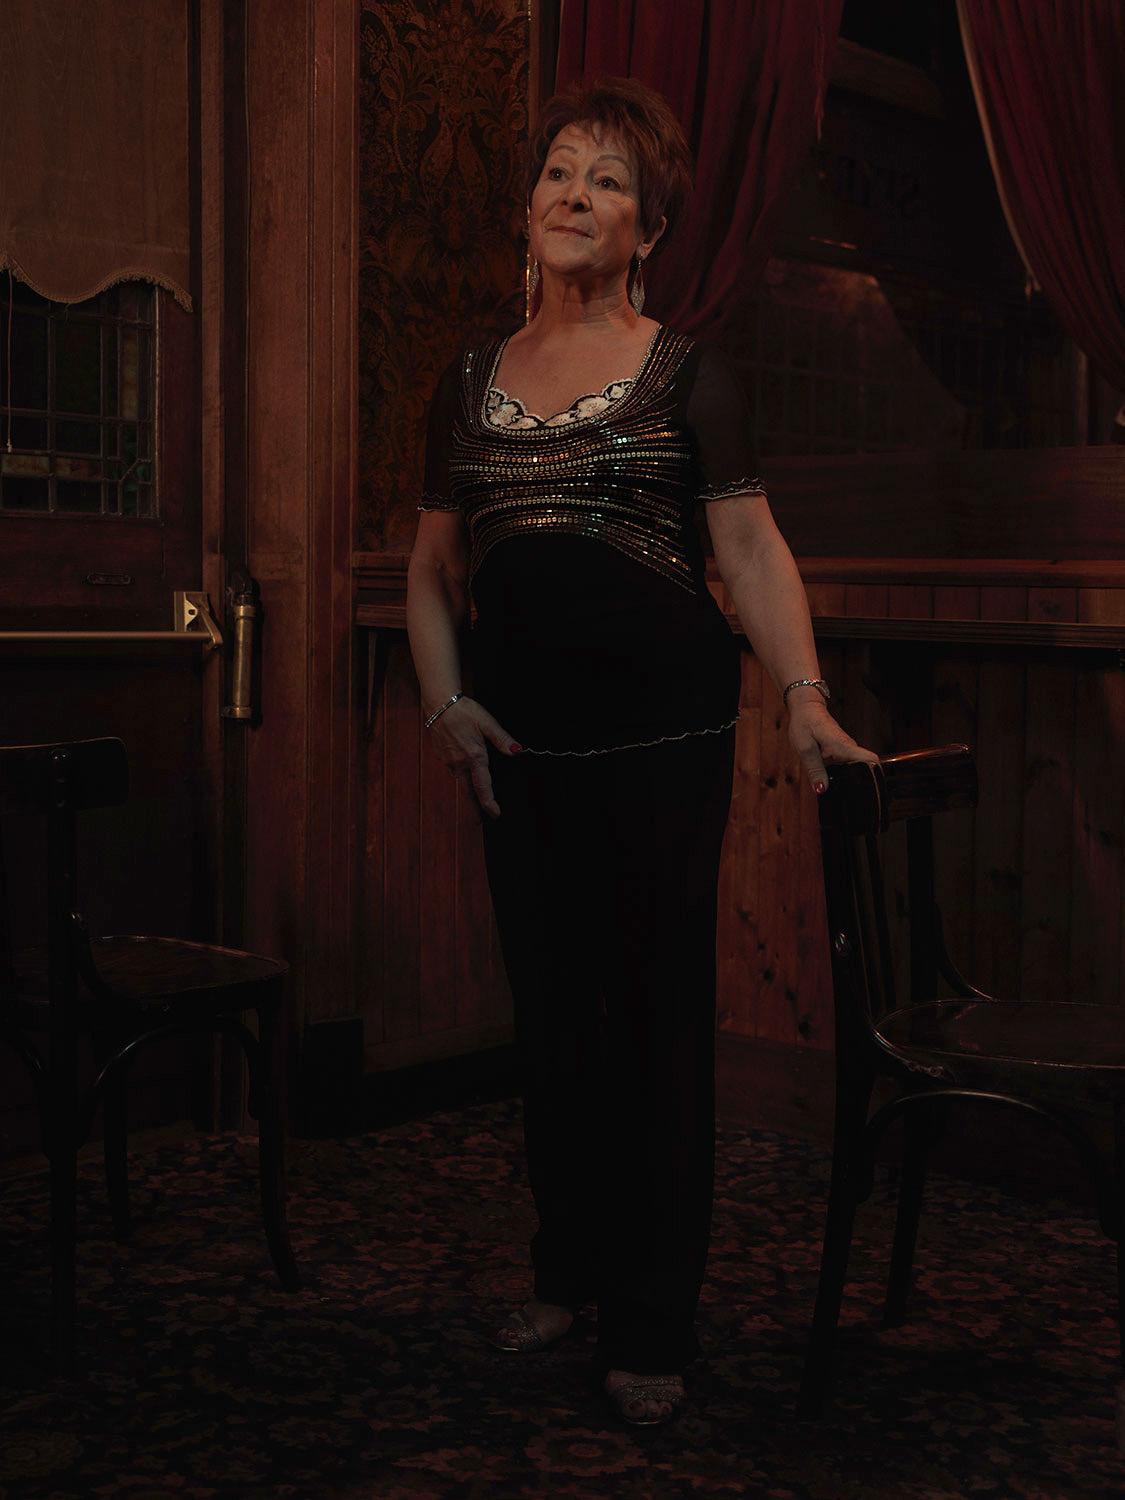 Female singer, dress, pub. Image from Last of the Old Crooners, Palm Tree pub by Tom Oldham